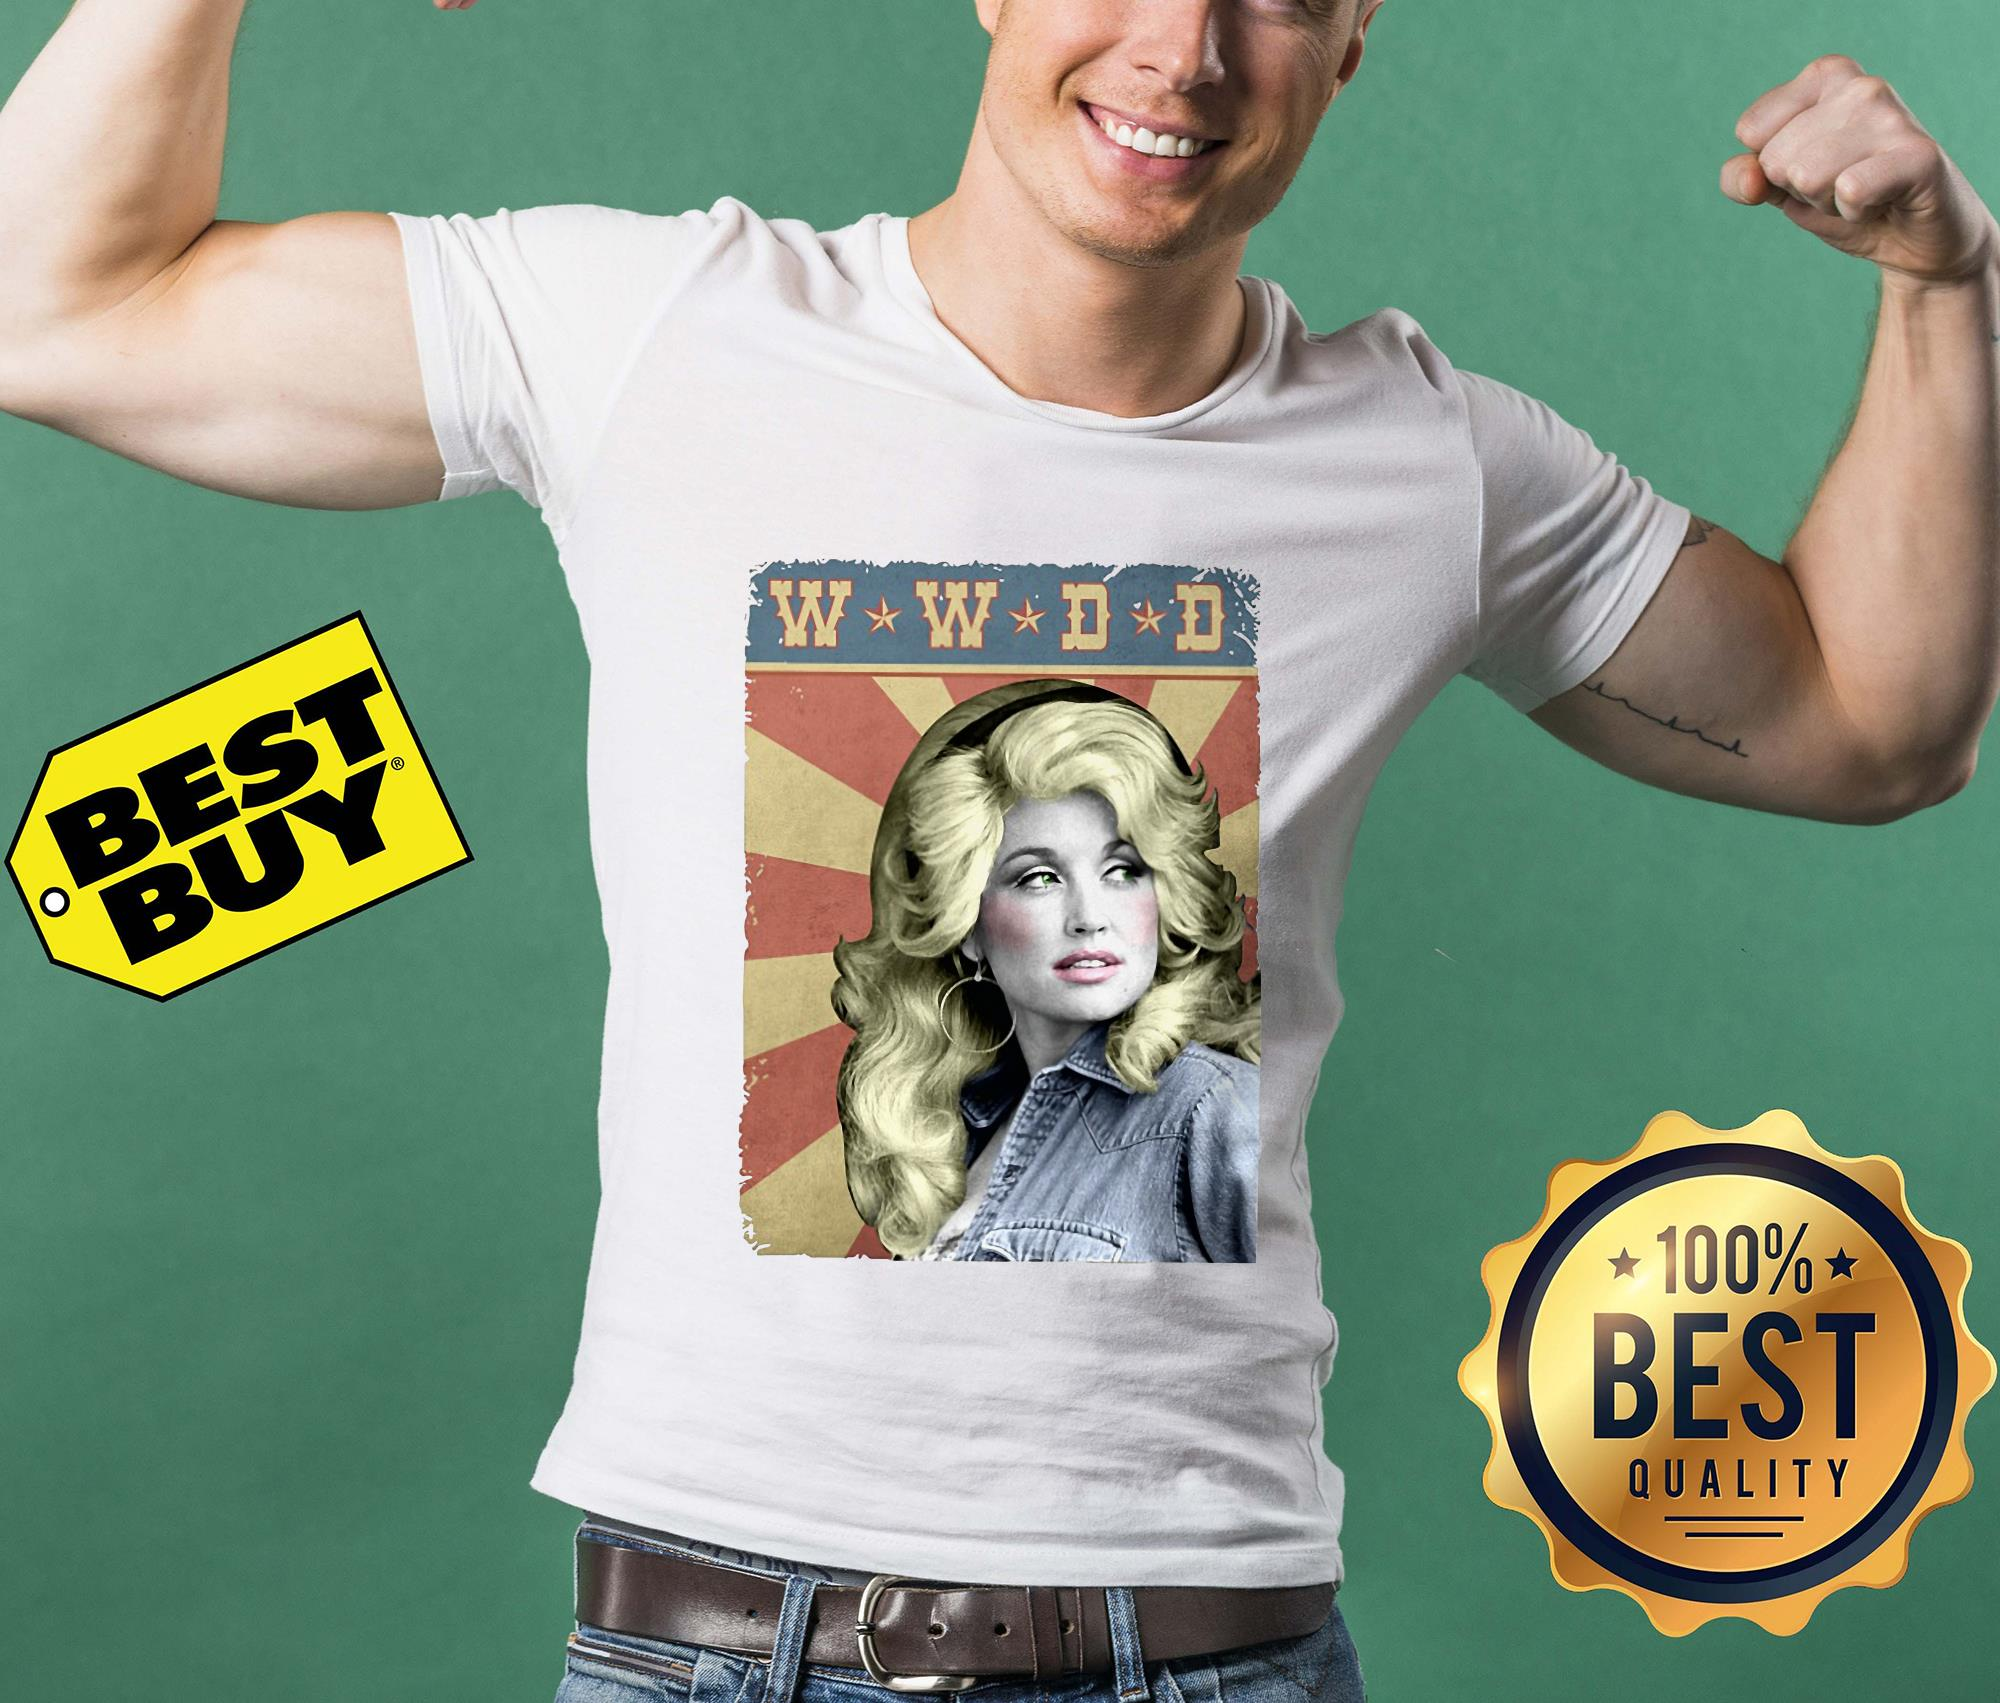 WWDD What Would Dolly Do?  shirt